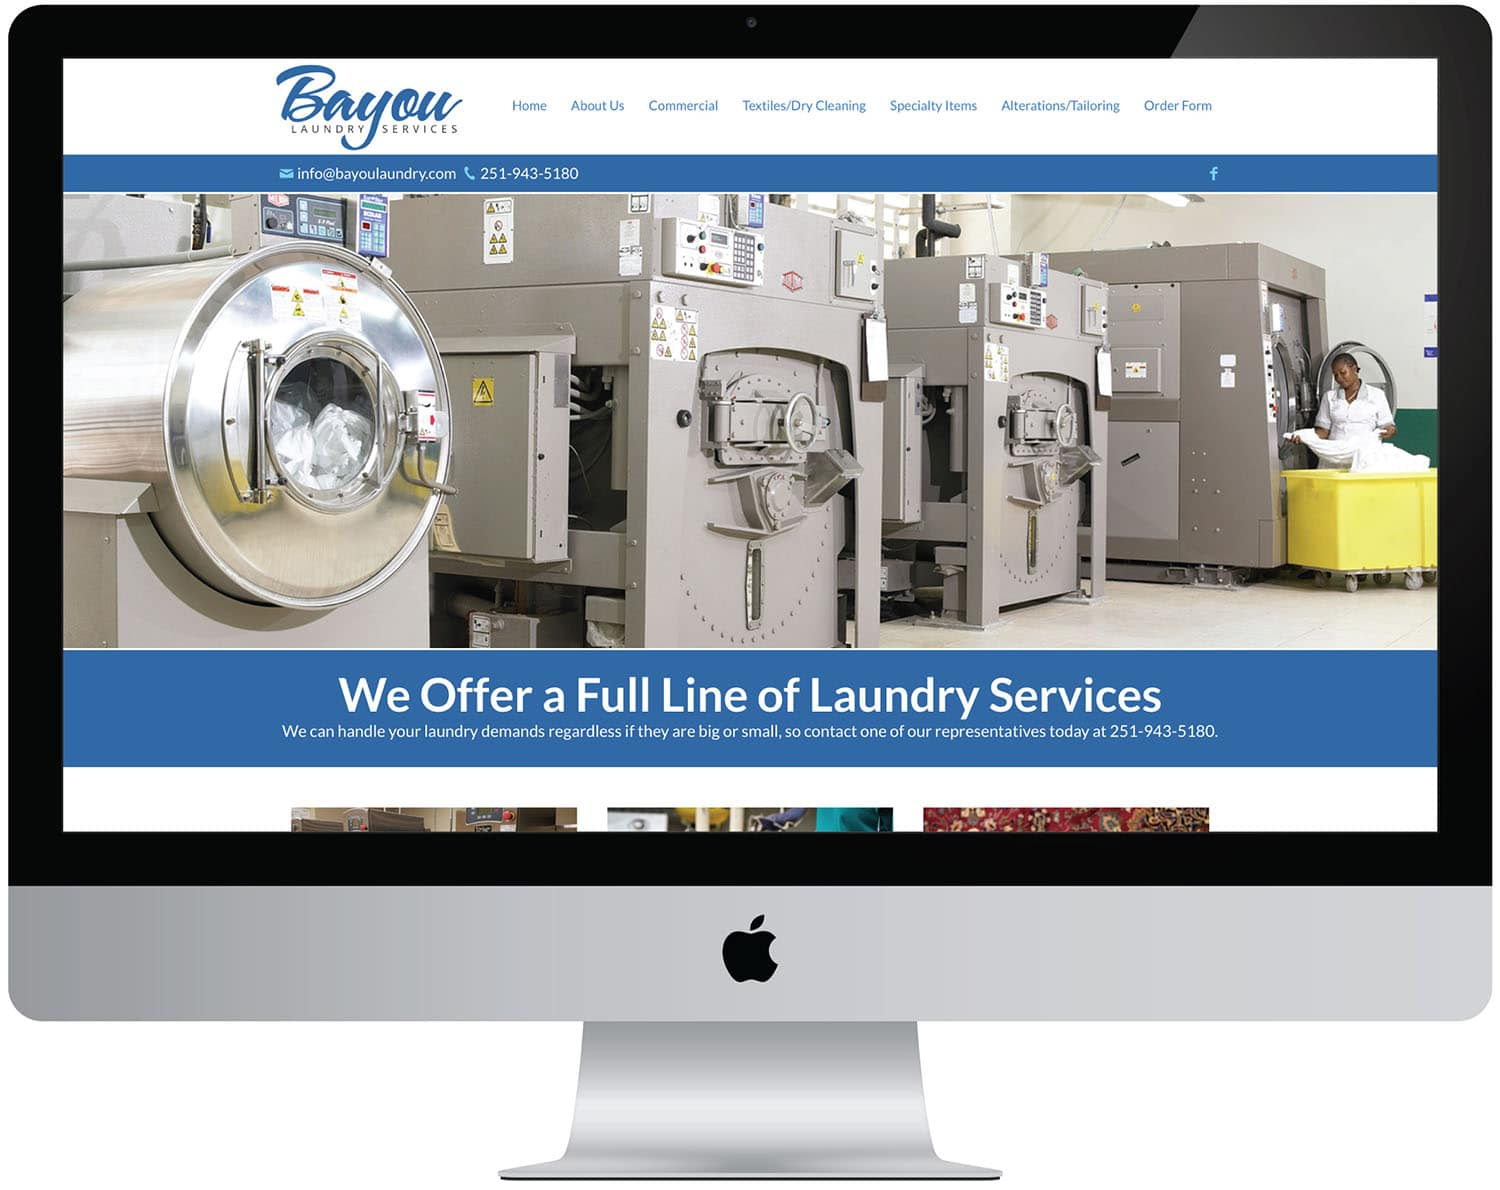 marketing seo content computer web strategy bayou laundry